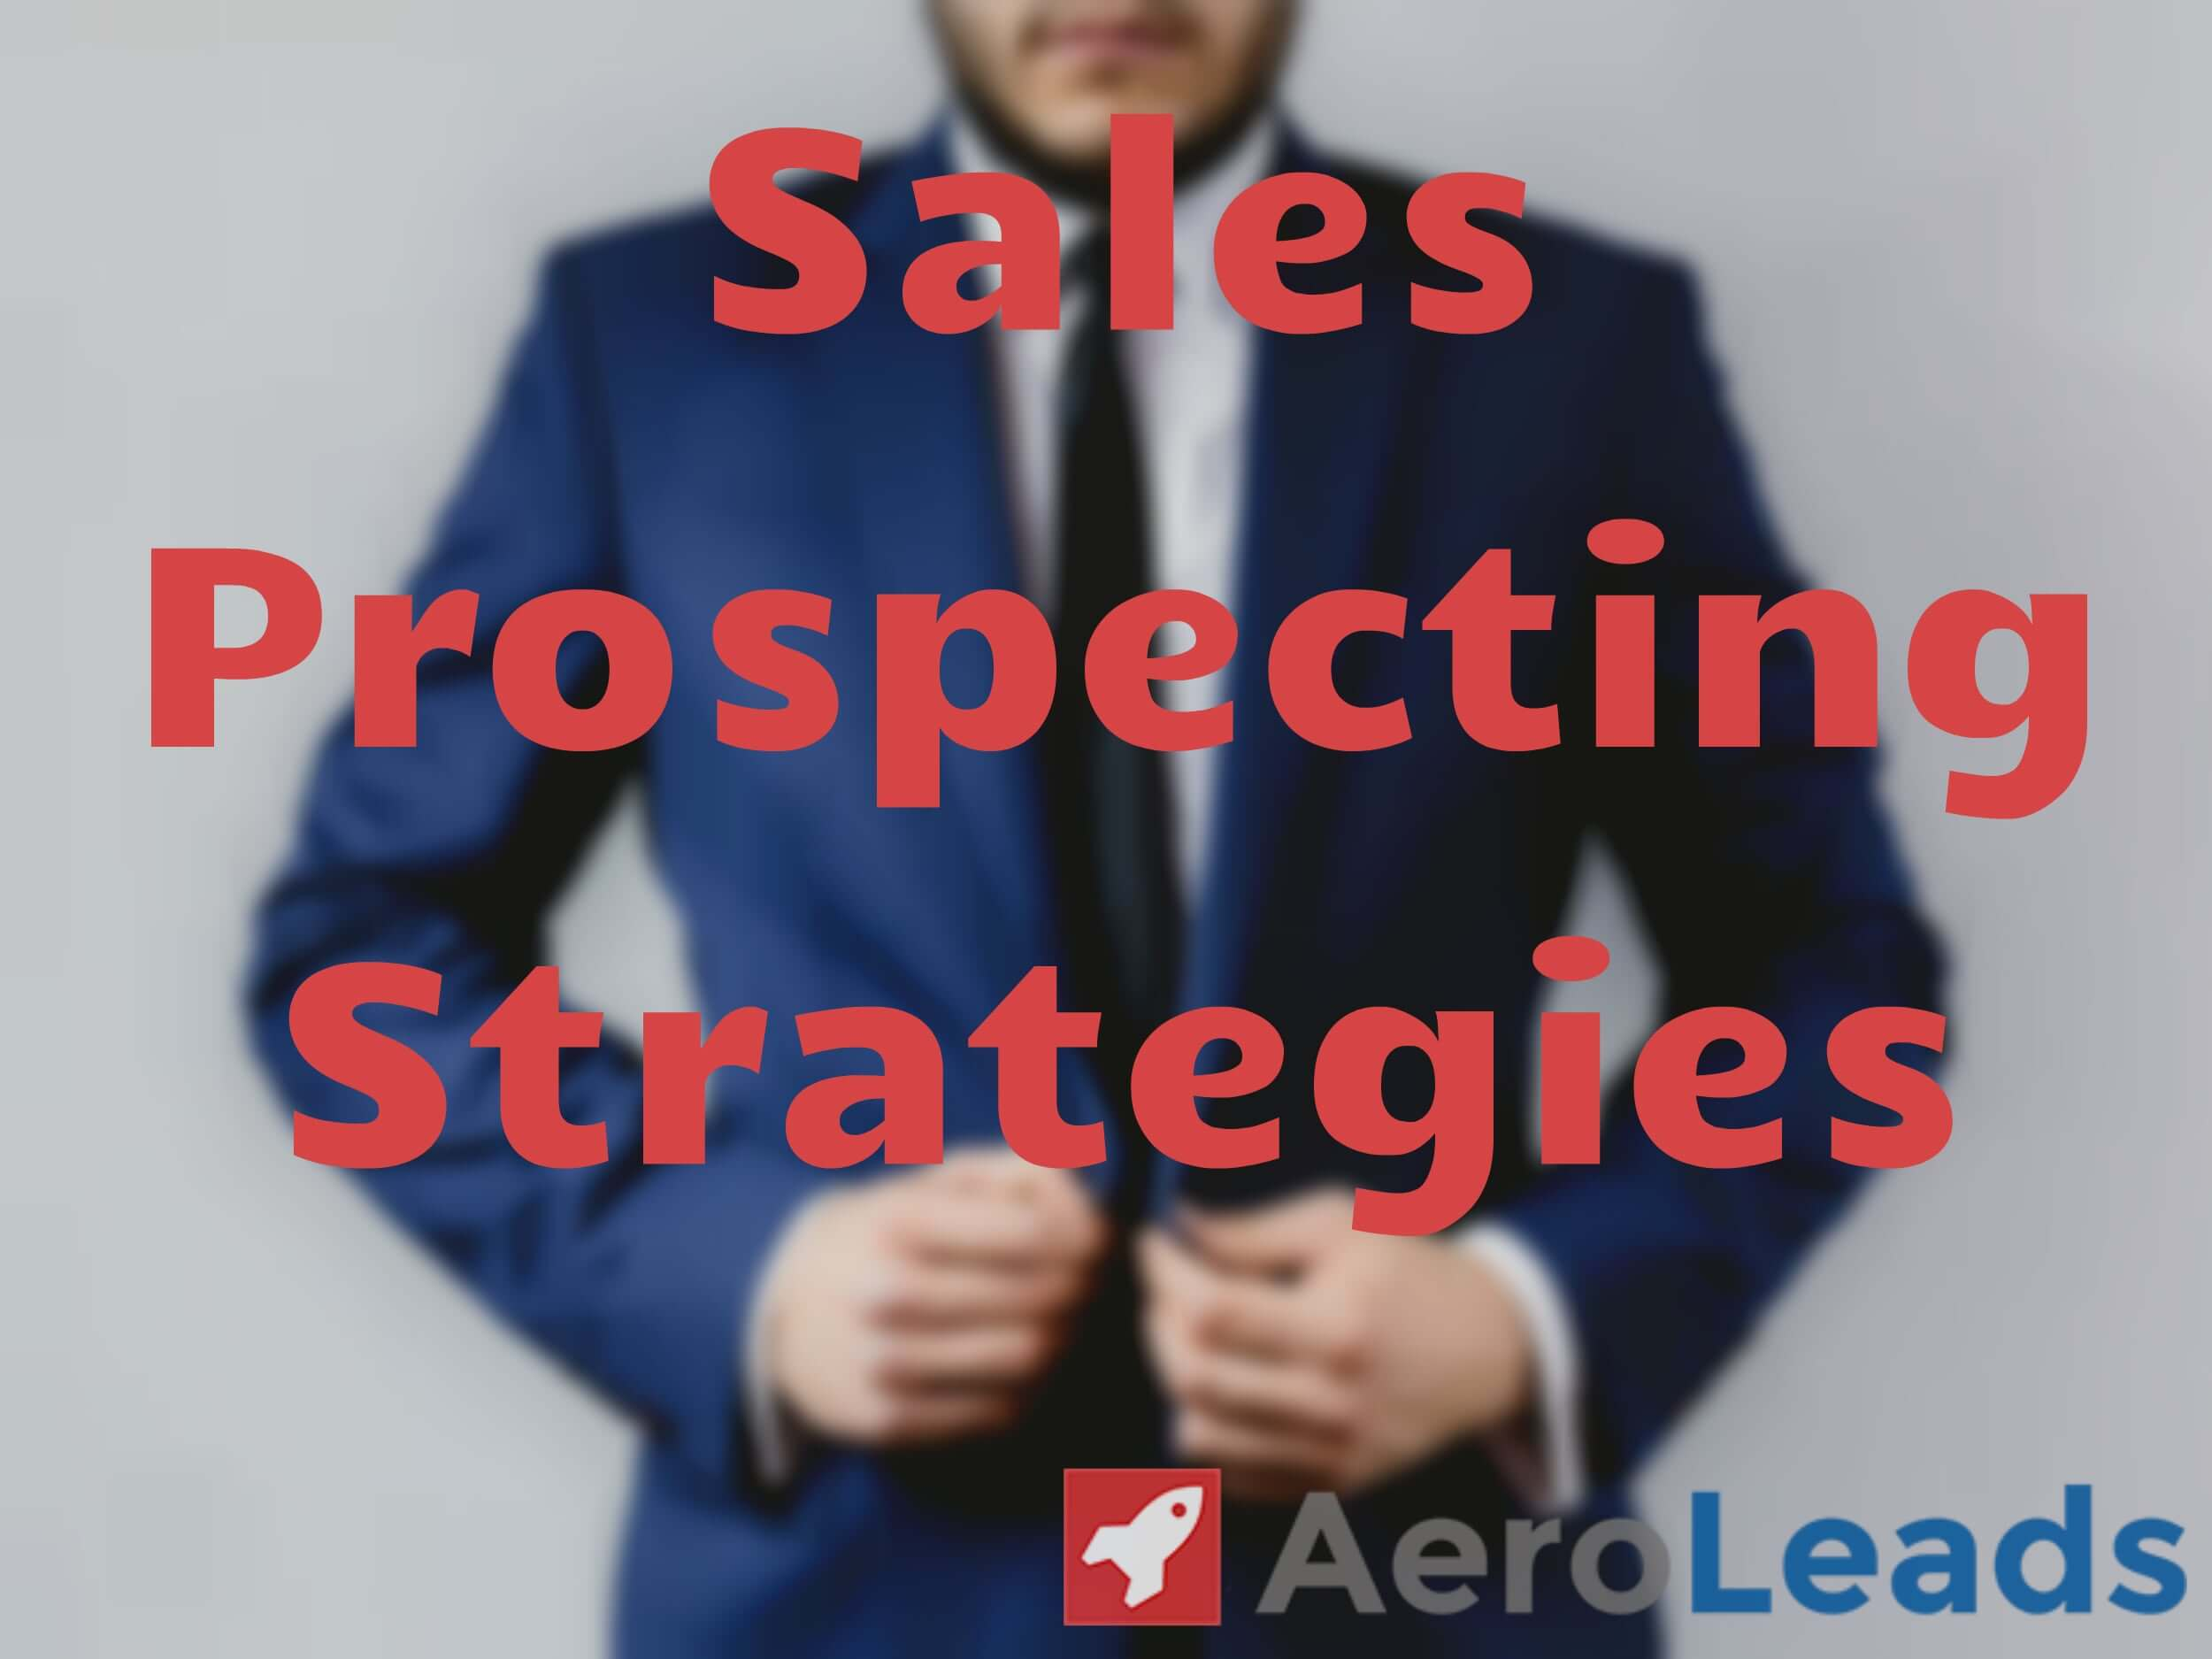 targeted-sales-prospecting-strategies - AeroLeads Blog